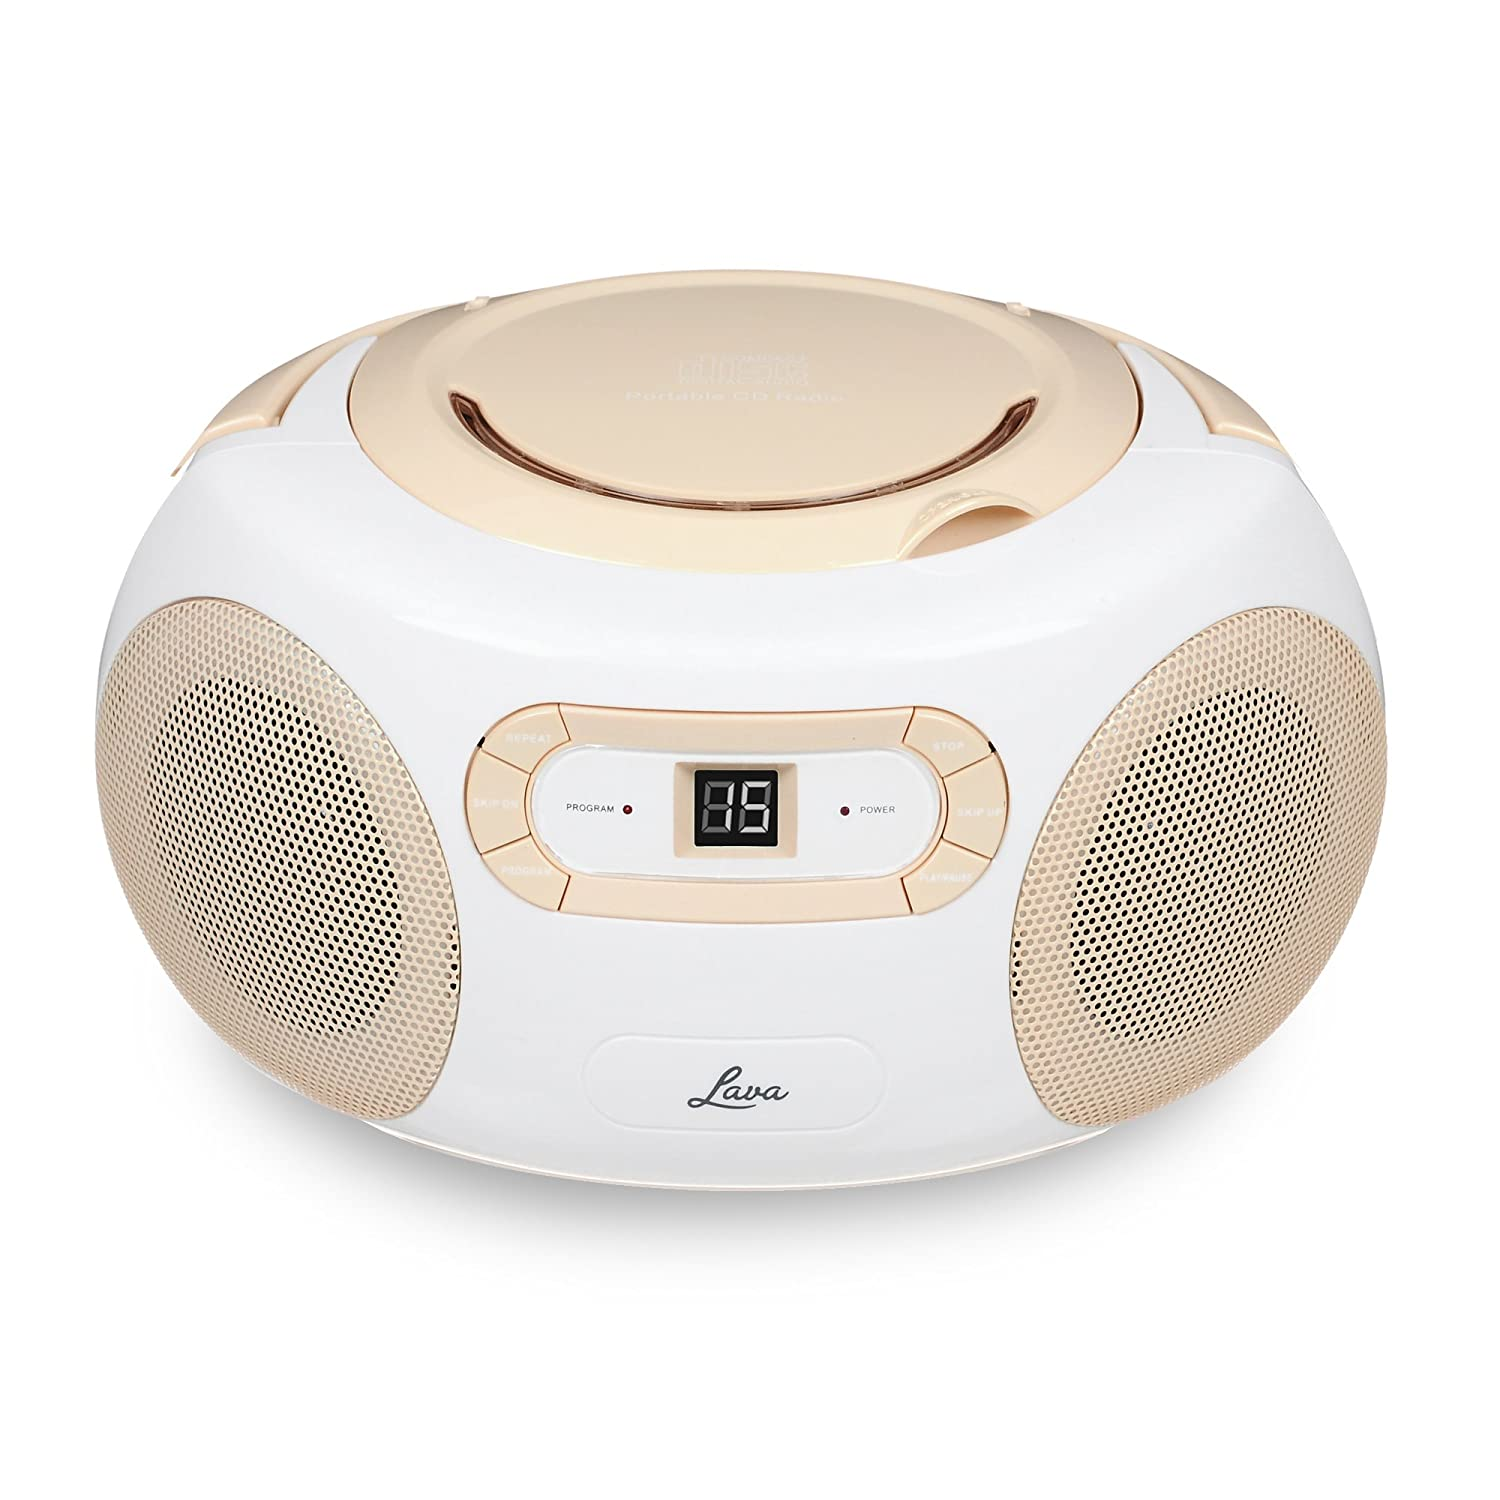 Small Cd Player For Bedroom Lava Boombox Cd Player And Fm Radio With Cd Programming Features